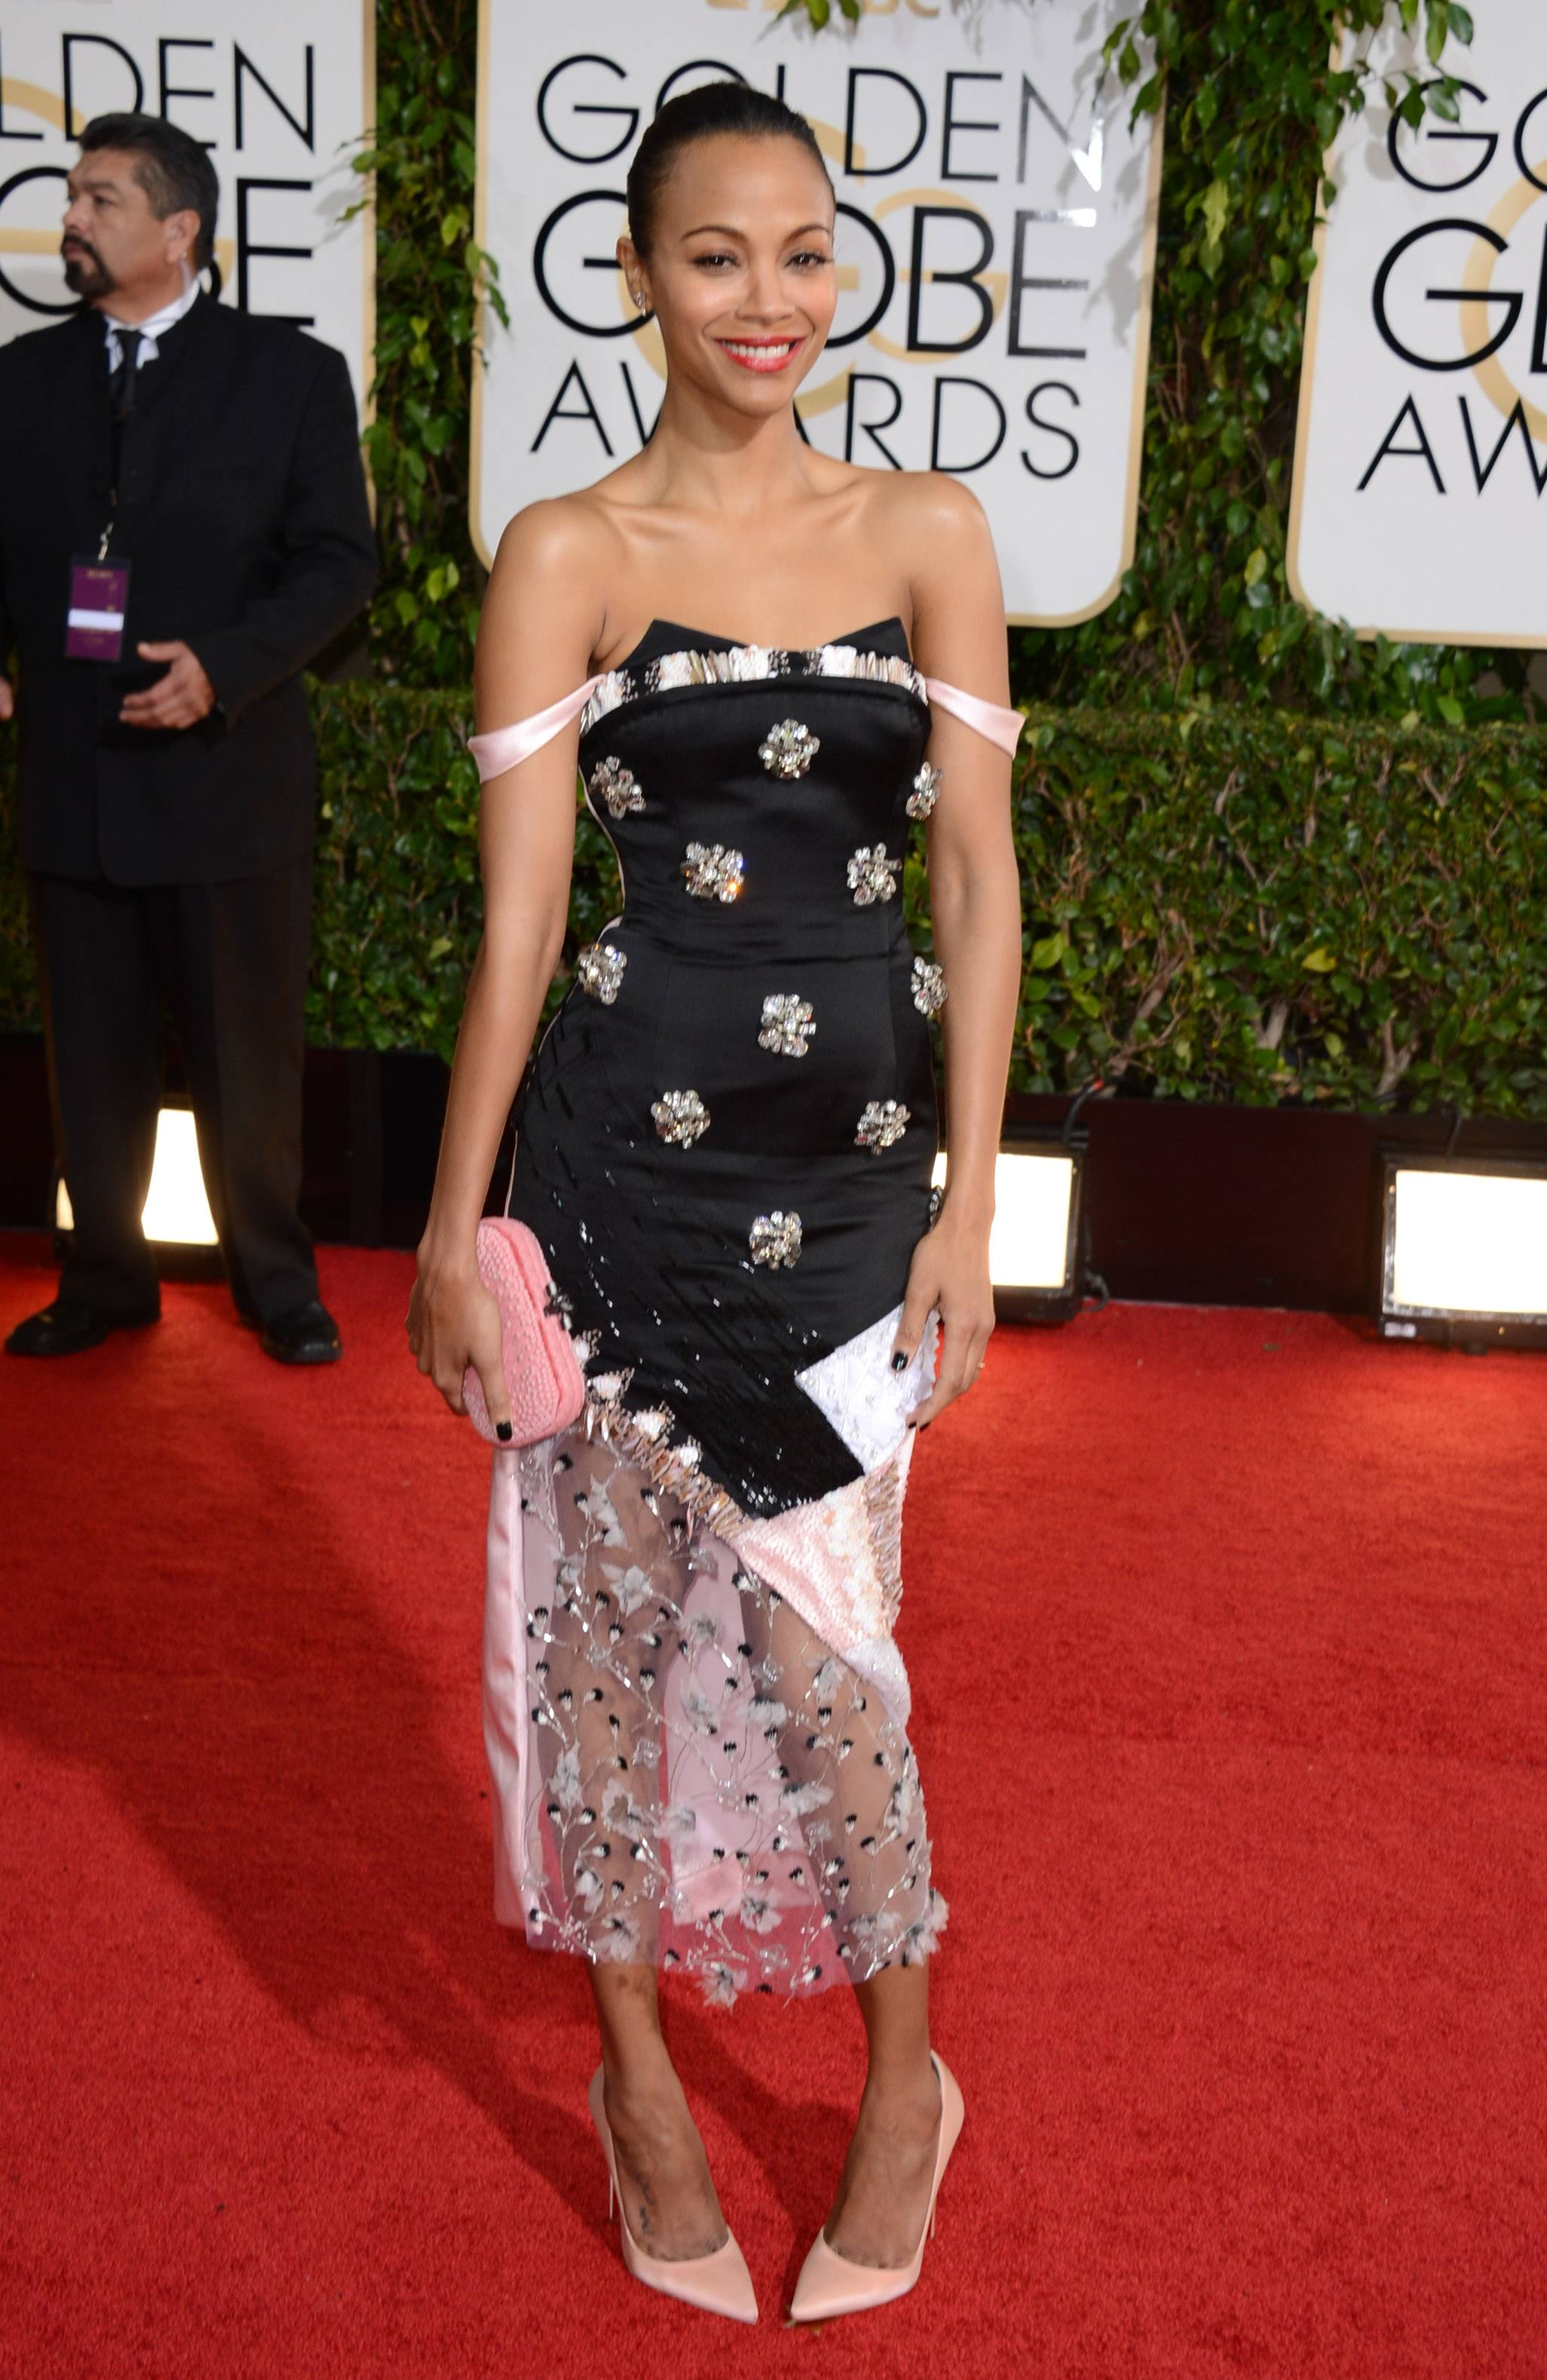 Zoey Saldana looks a little unsure in this somewhat awkward pose she struck on the red carpet.